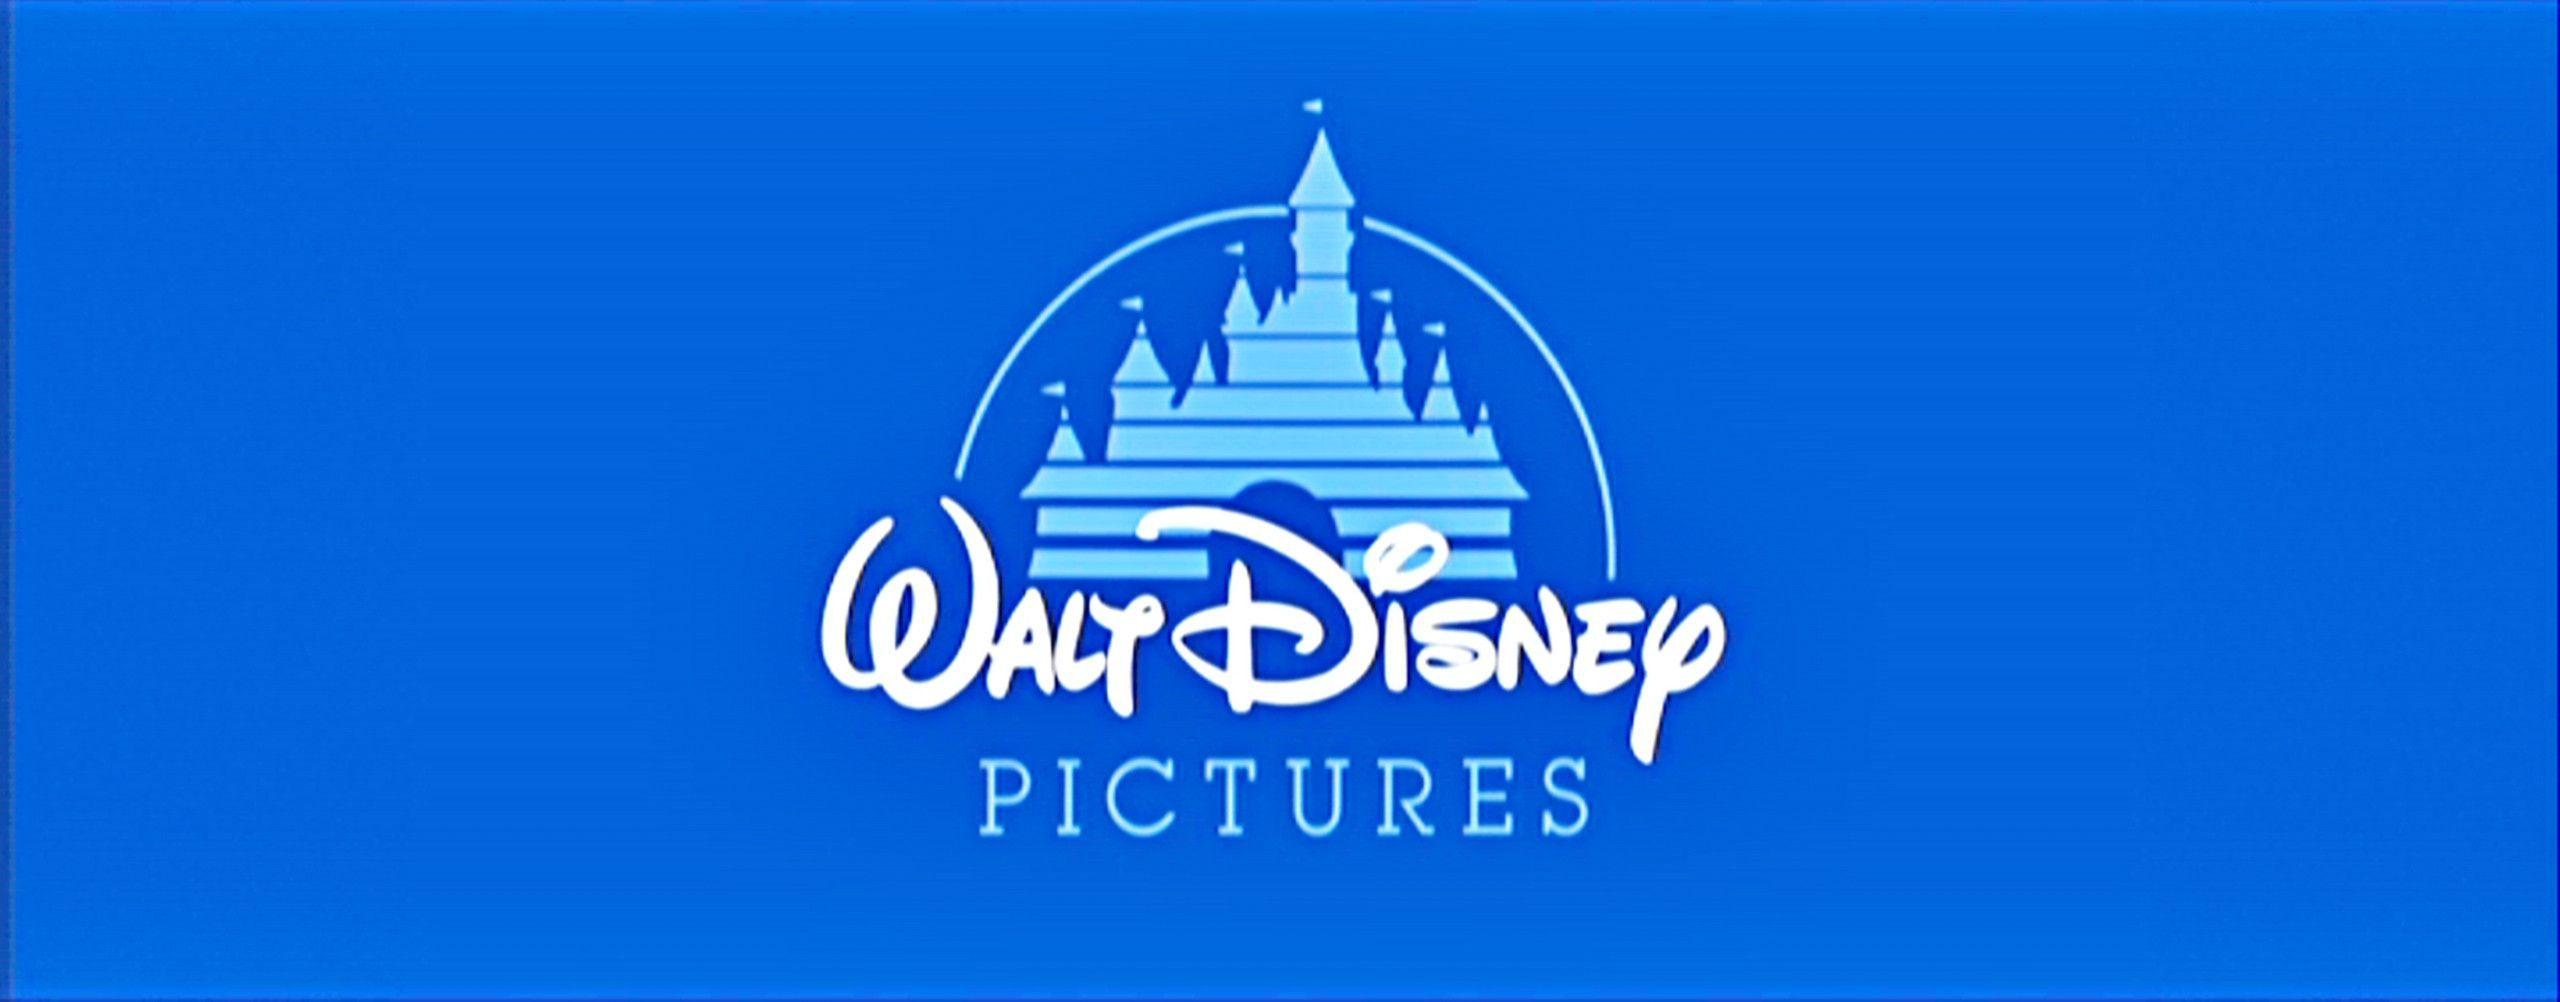 Disney Logo Wallpapers 2560x1002